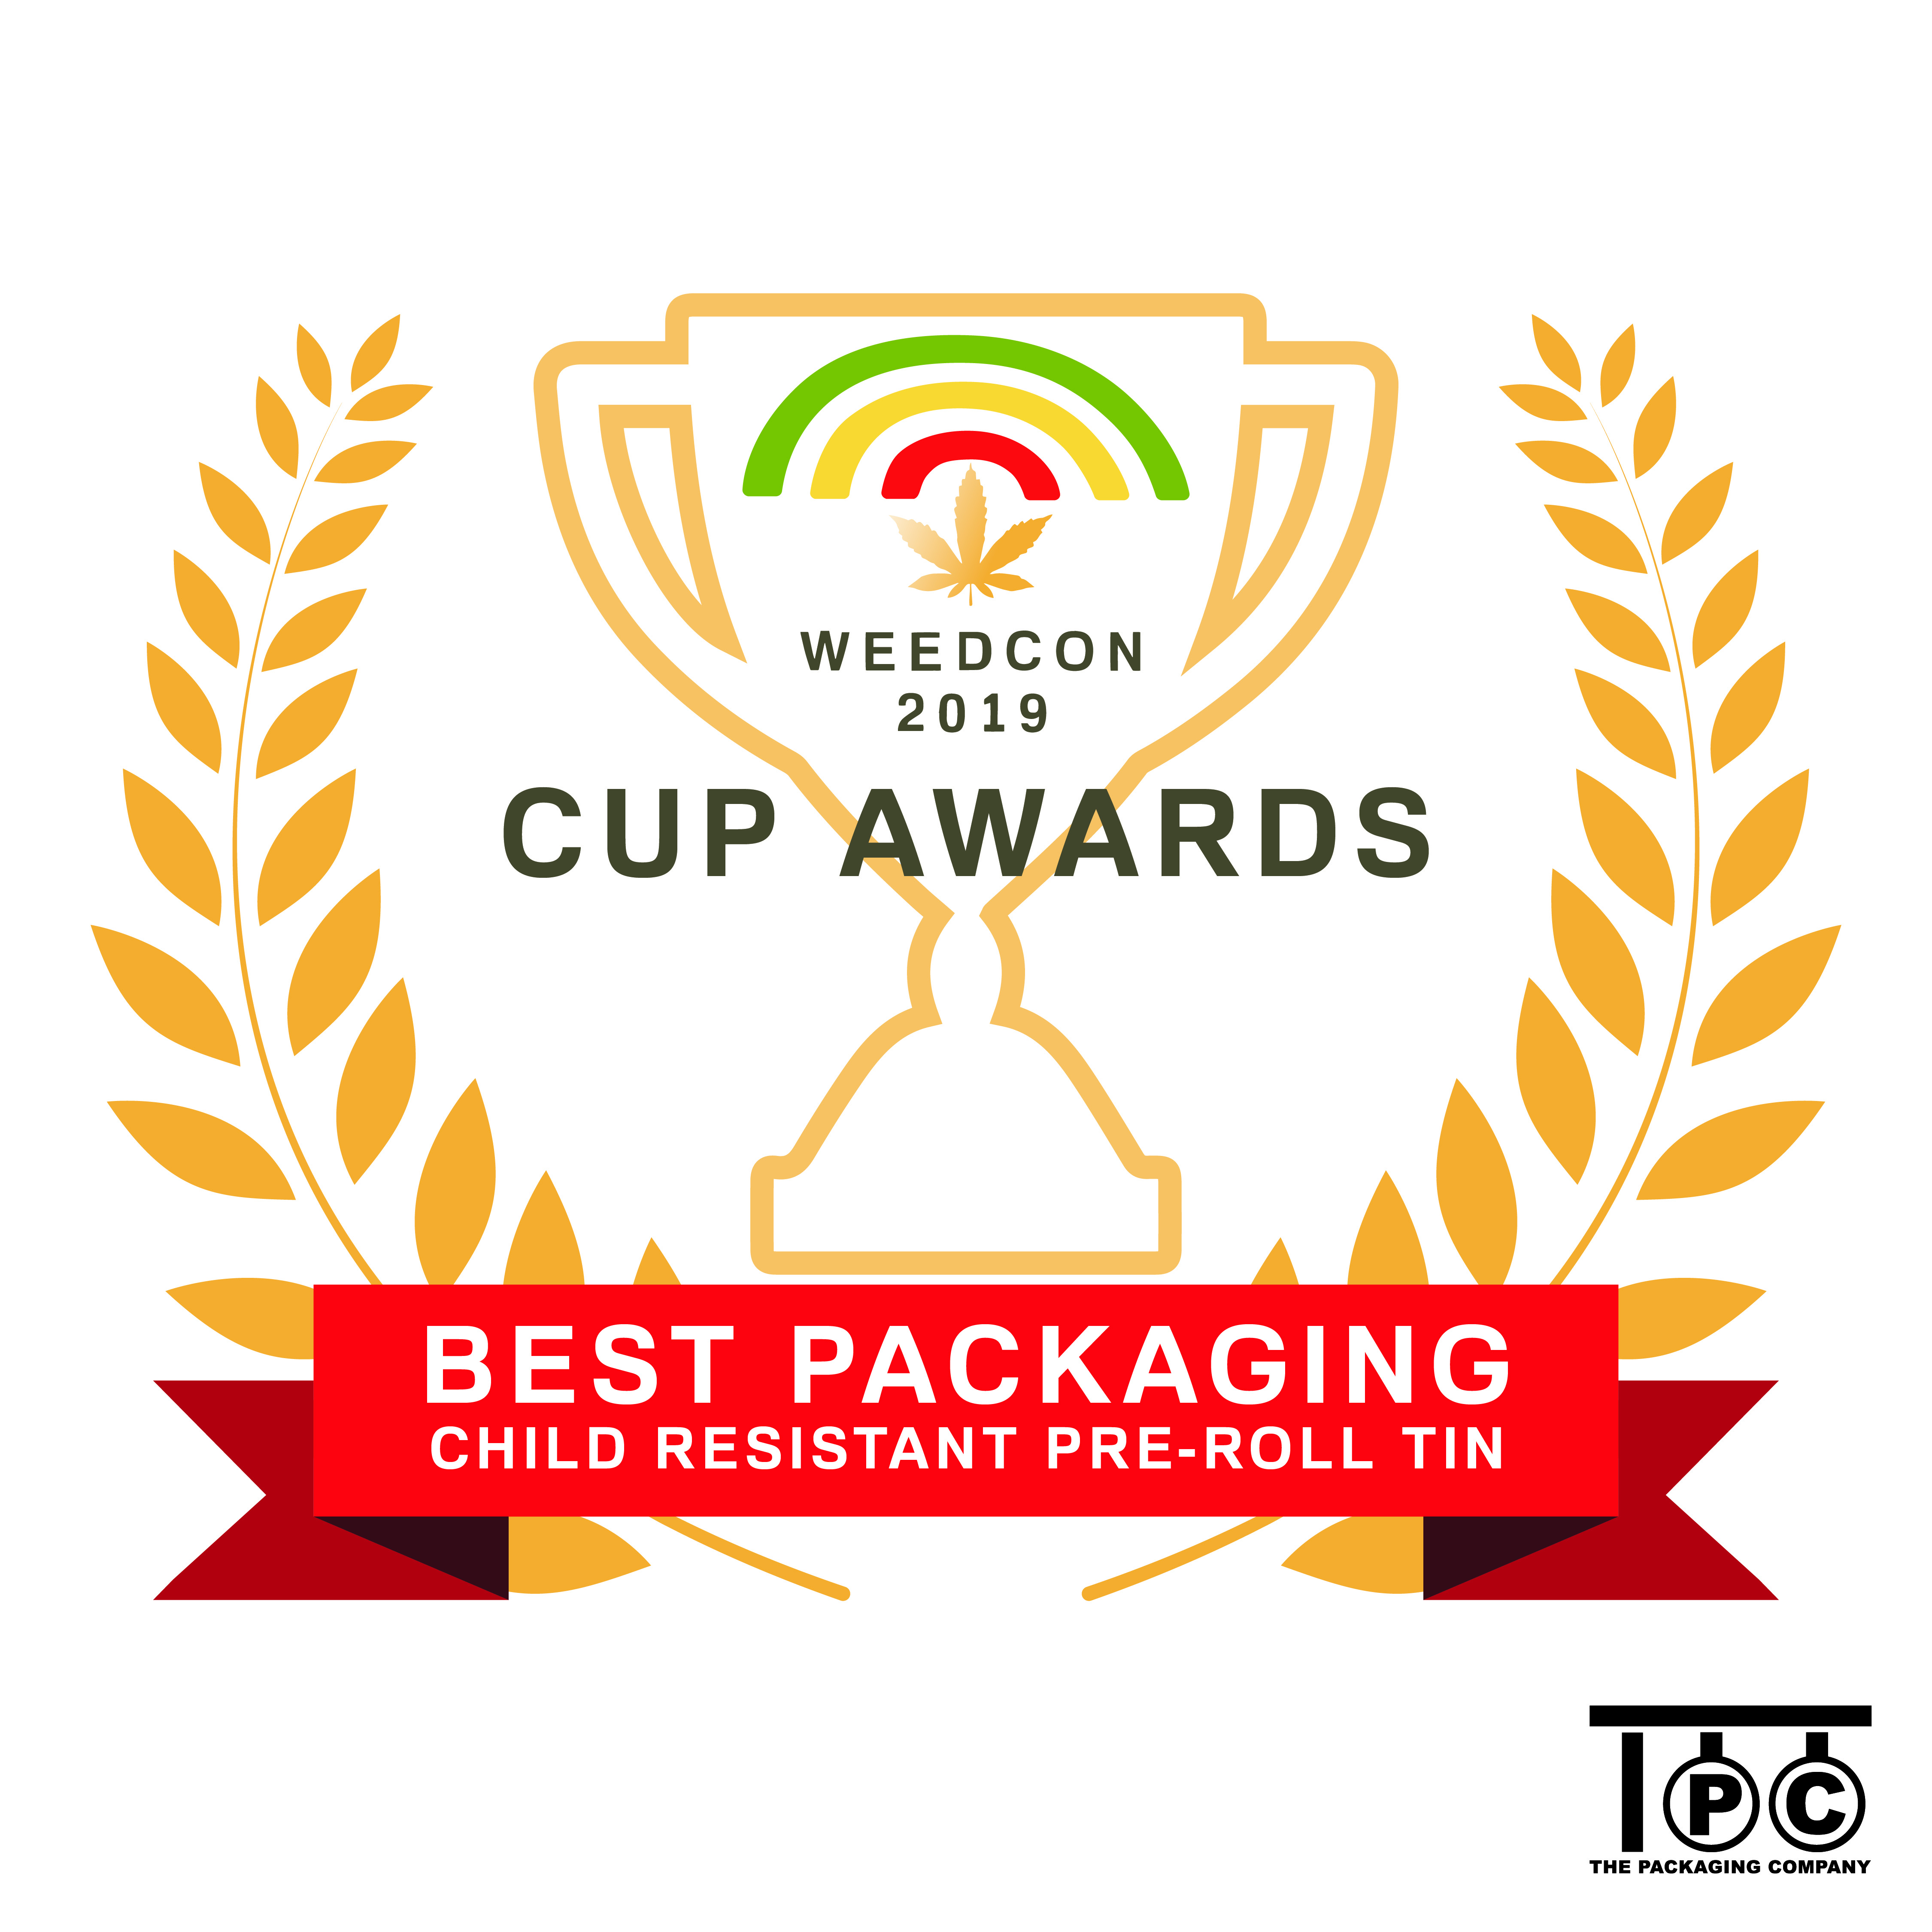 Best Packaging award for The Packaging Company by WeedCon West LA